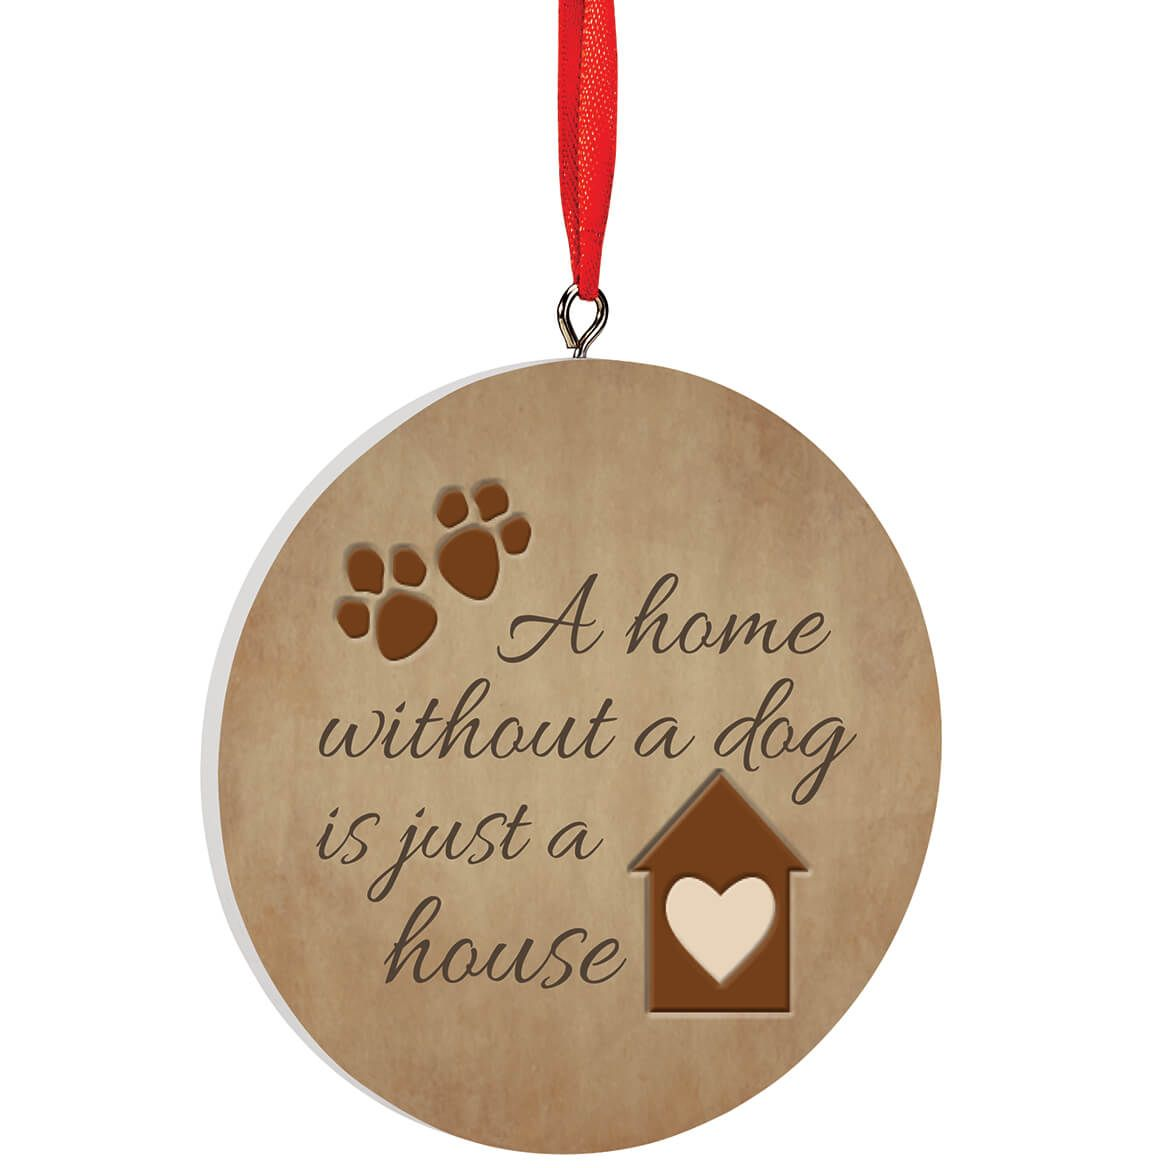 Personalized Home Without A Pet Ornament-372732